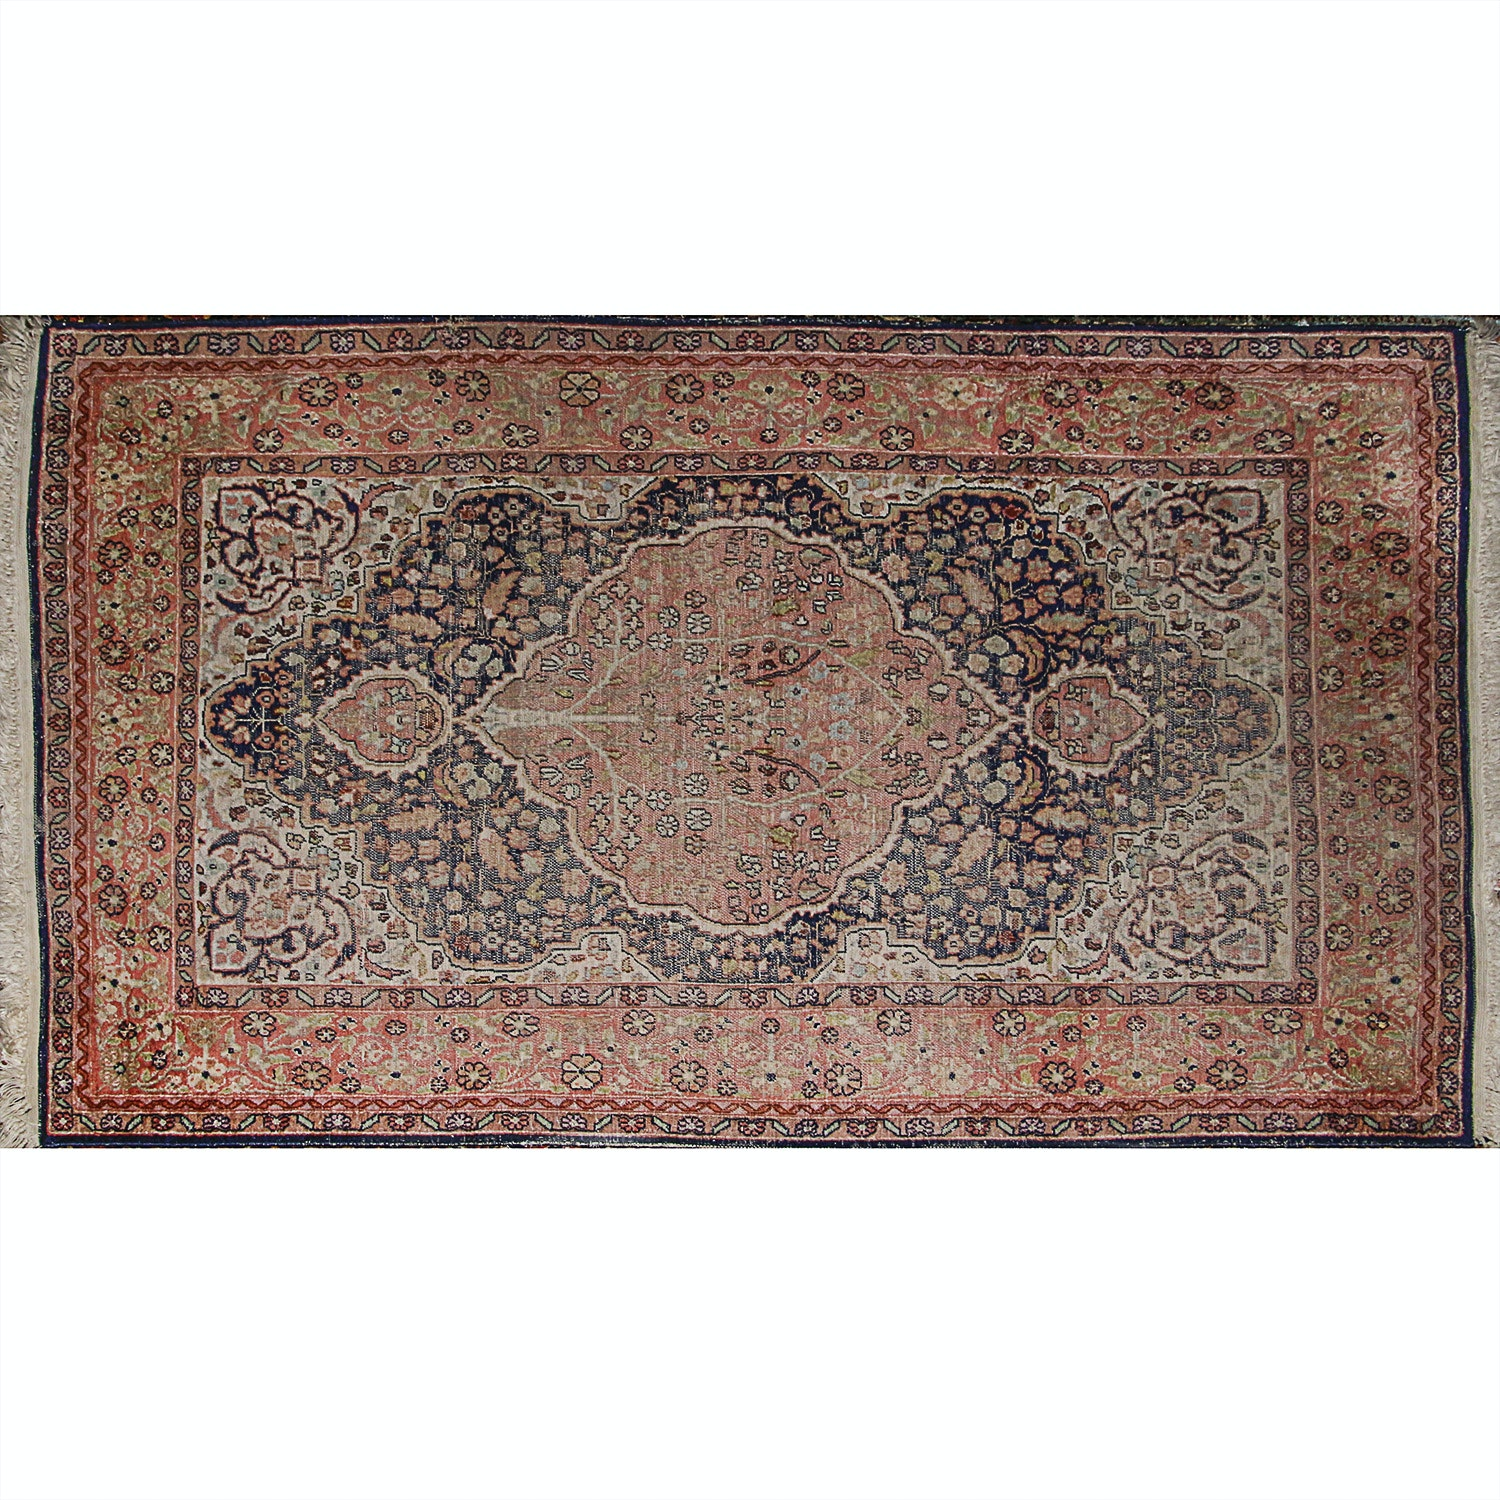 Power Loomed Indo-Persian Tabriz-Style Area Rug